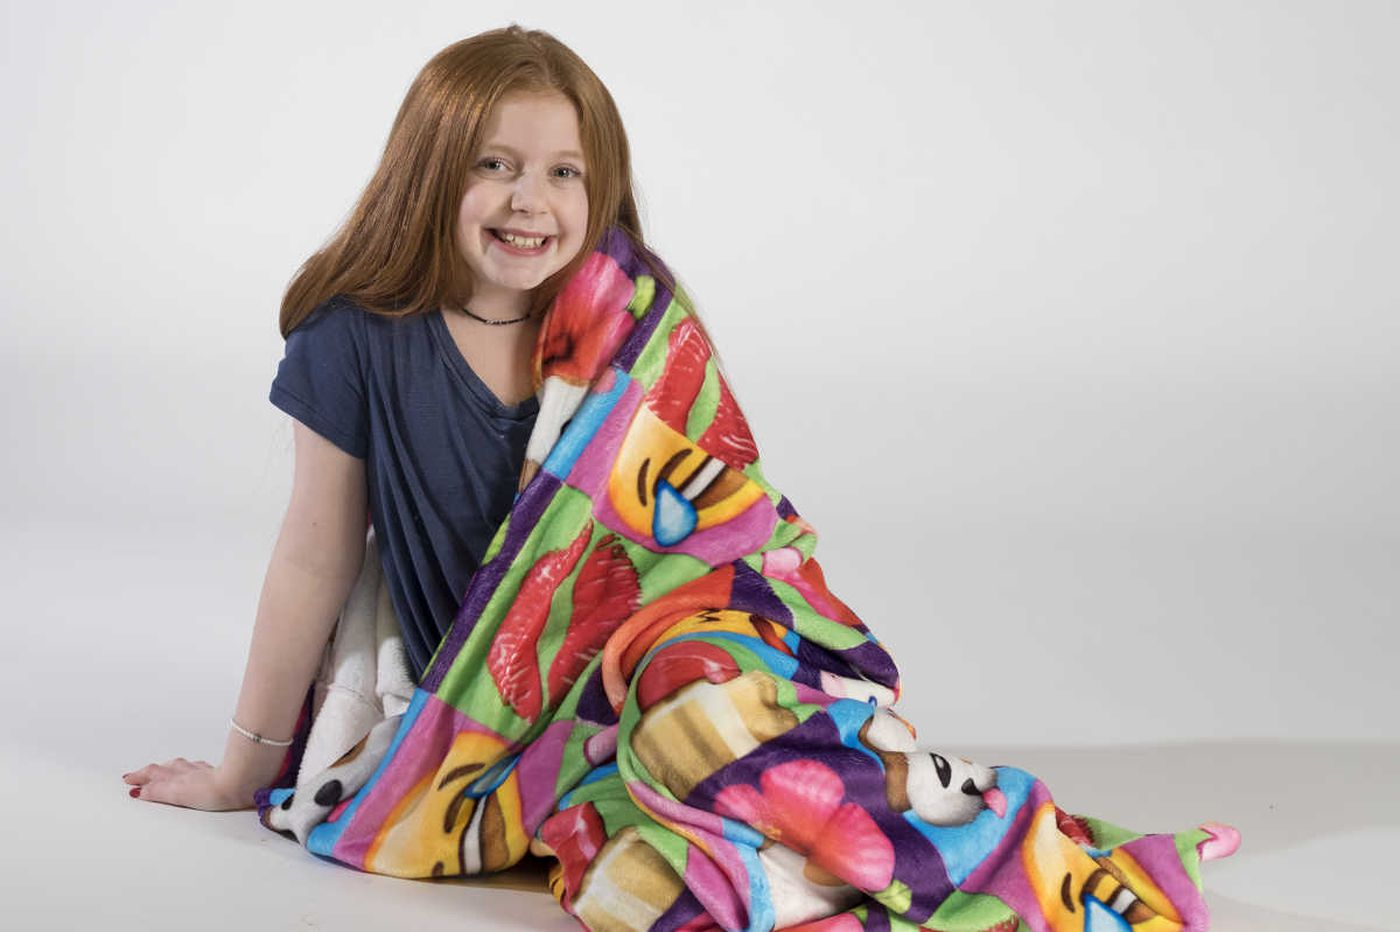 The latest in sleepover fashion: kiddie snuggies